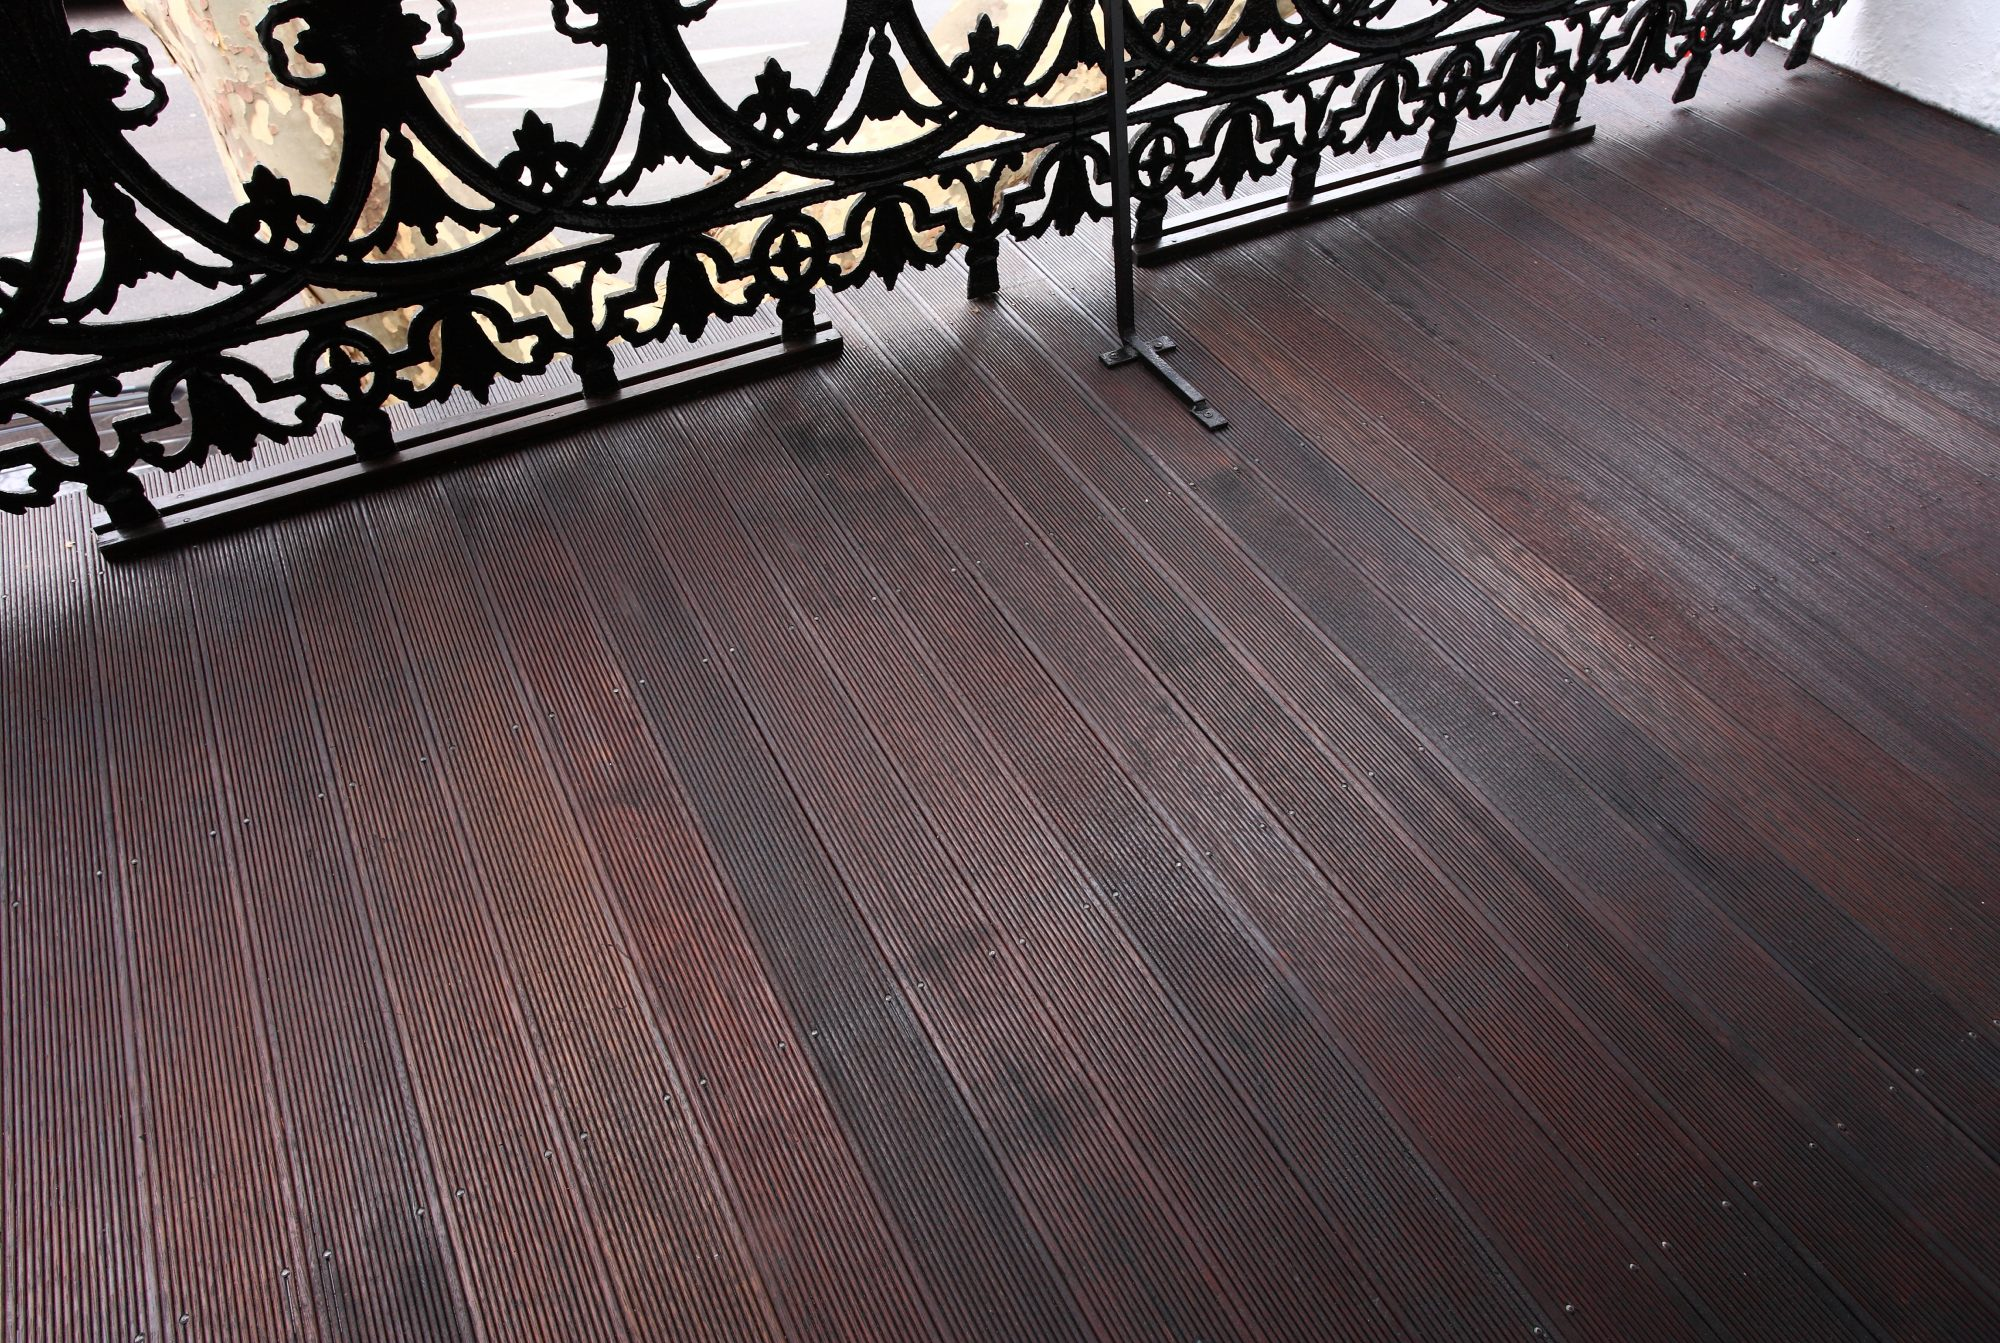 Restore old timber decks to look their best with Sikkens timber stains